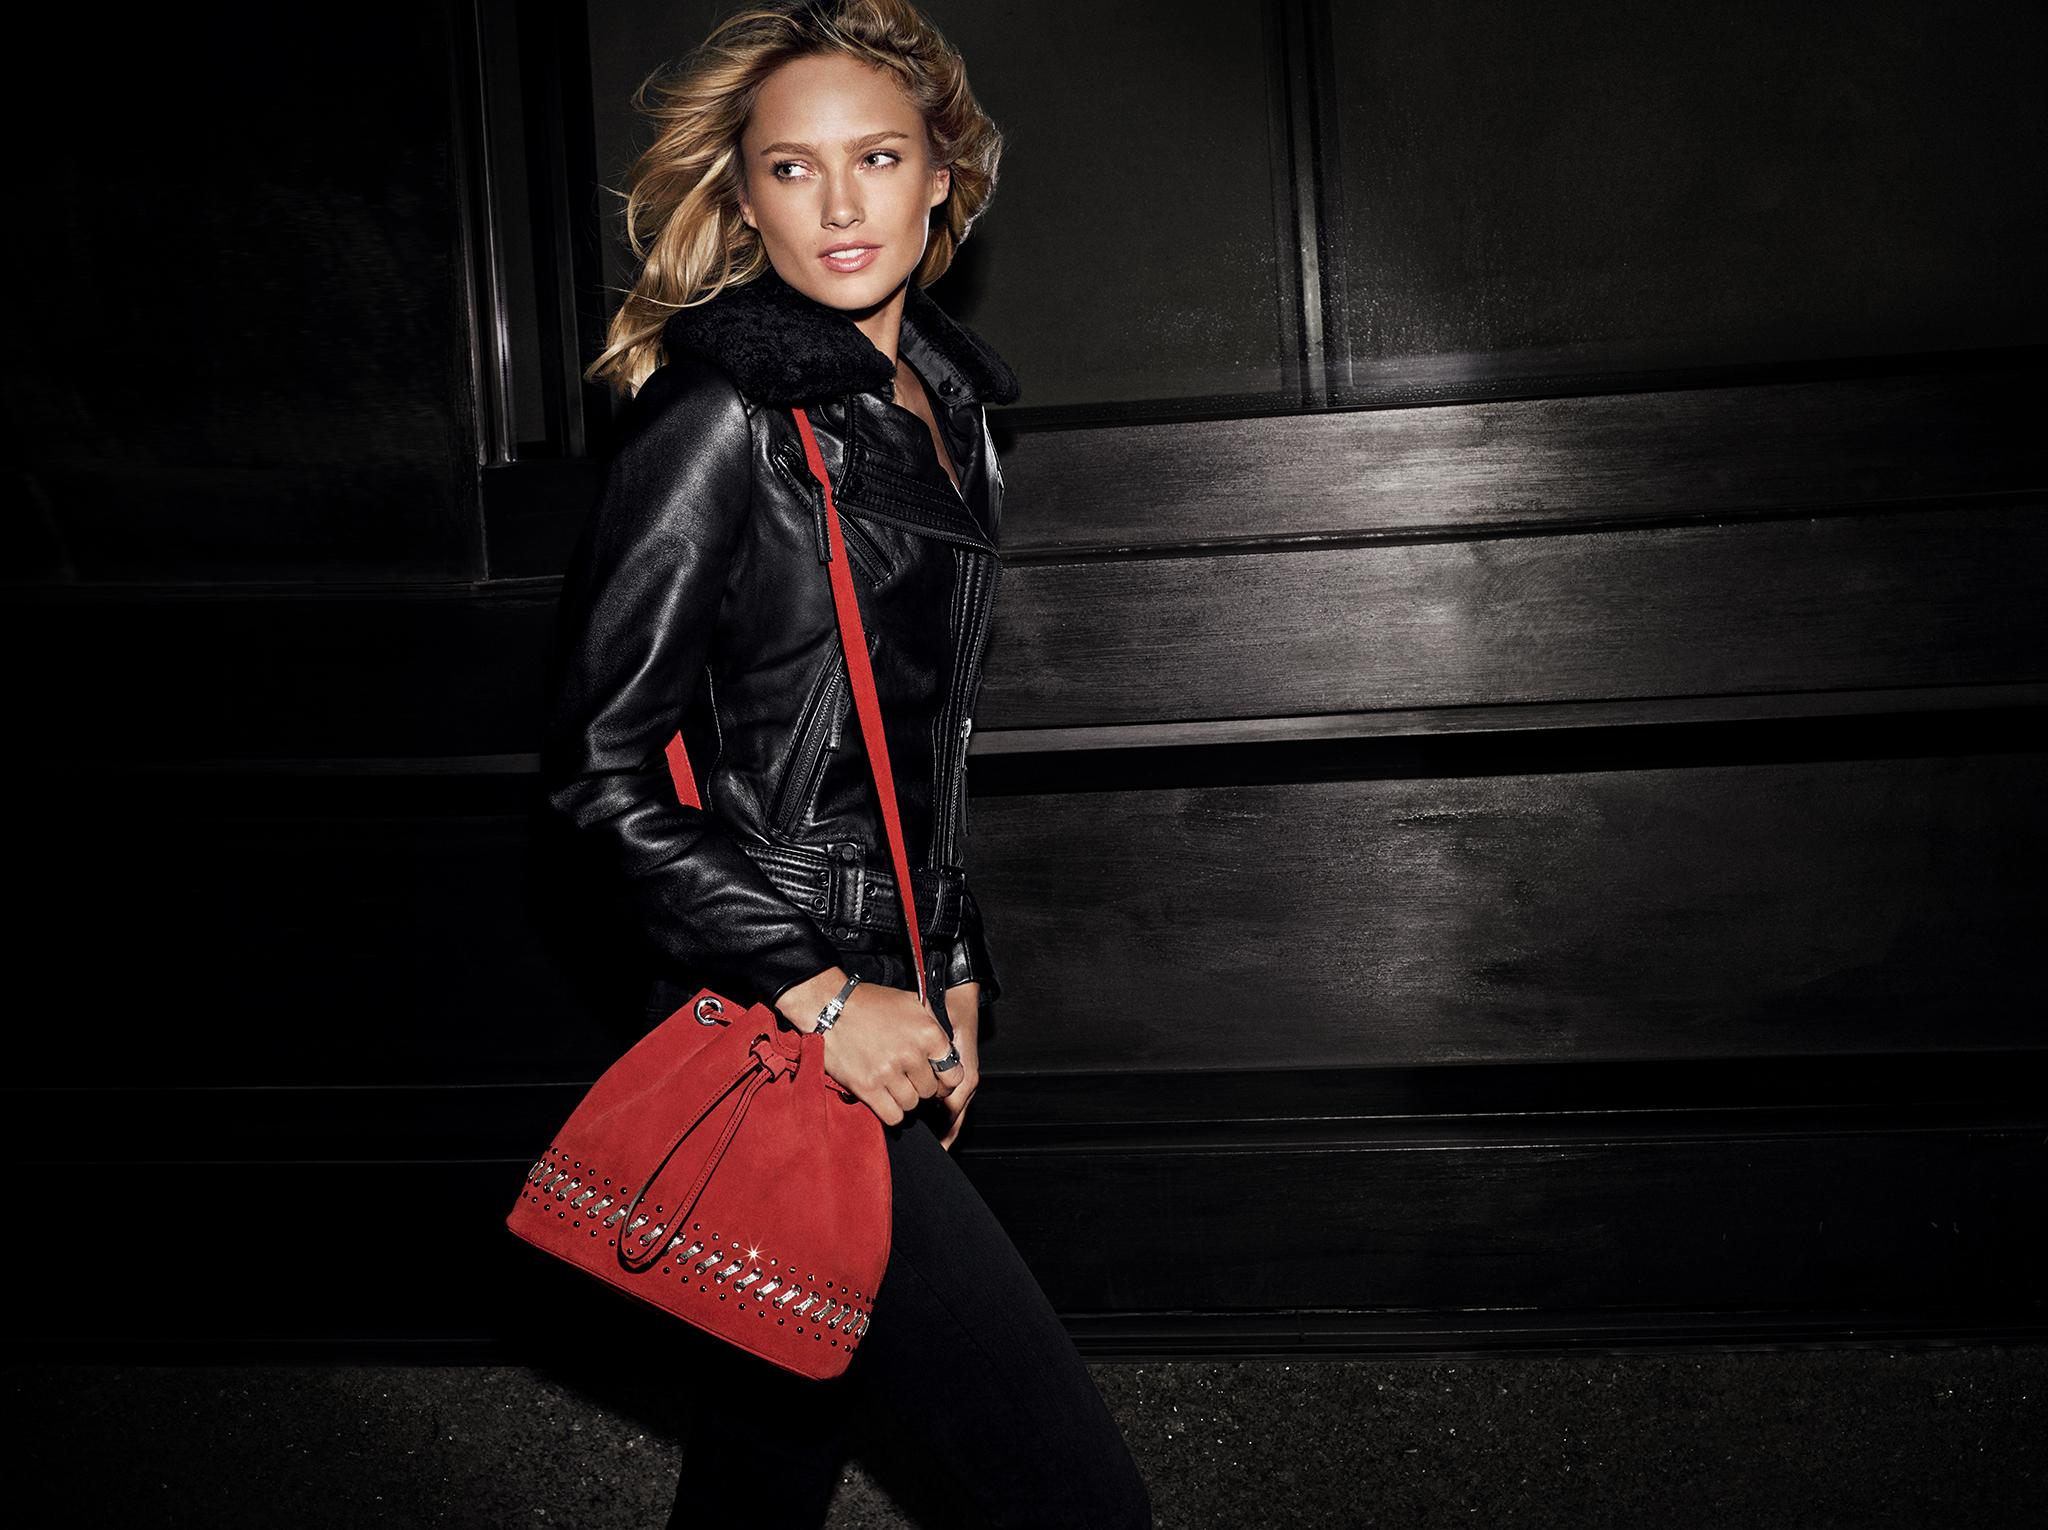 Because red is the only way to go. http://t.co/2sVIuvaJls #DestinationGlam http://t.co/EU3zRXJZzU